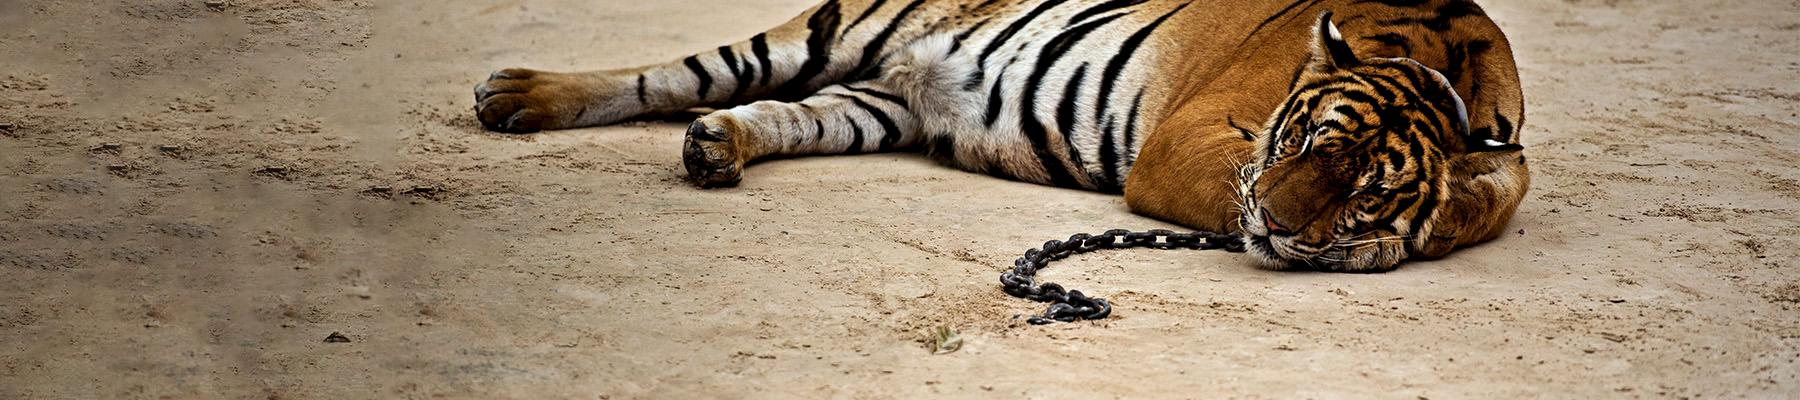 A captive Tiger Panthera tigris, either tamed or drugged in Thailand © James Morgan / WWF